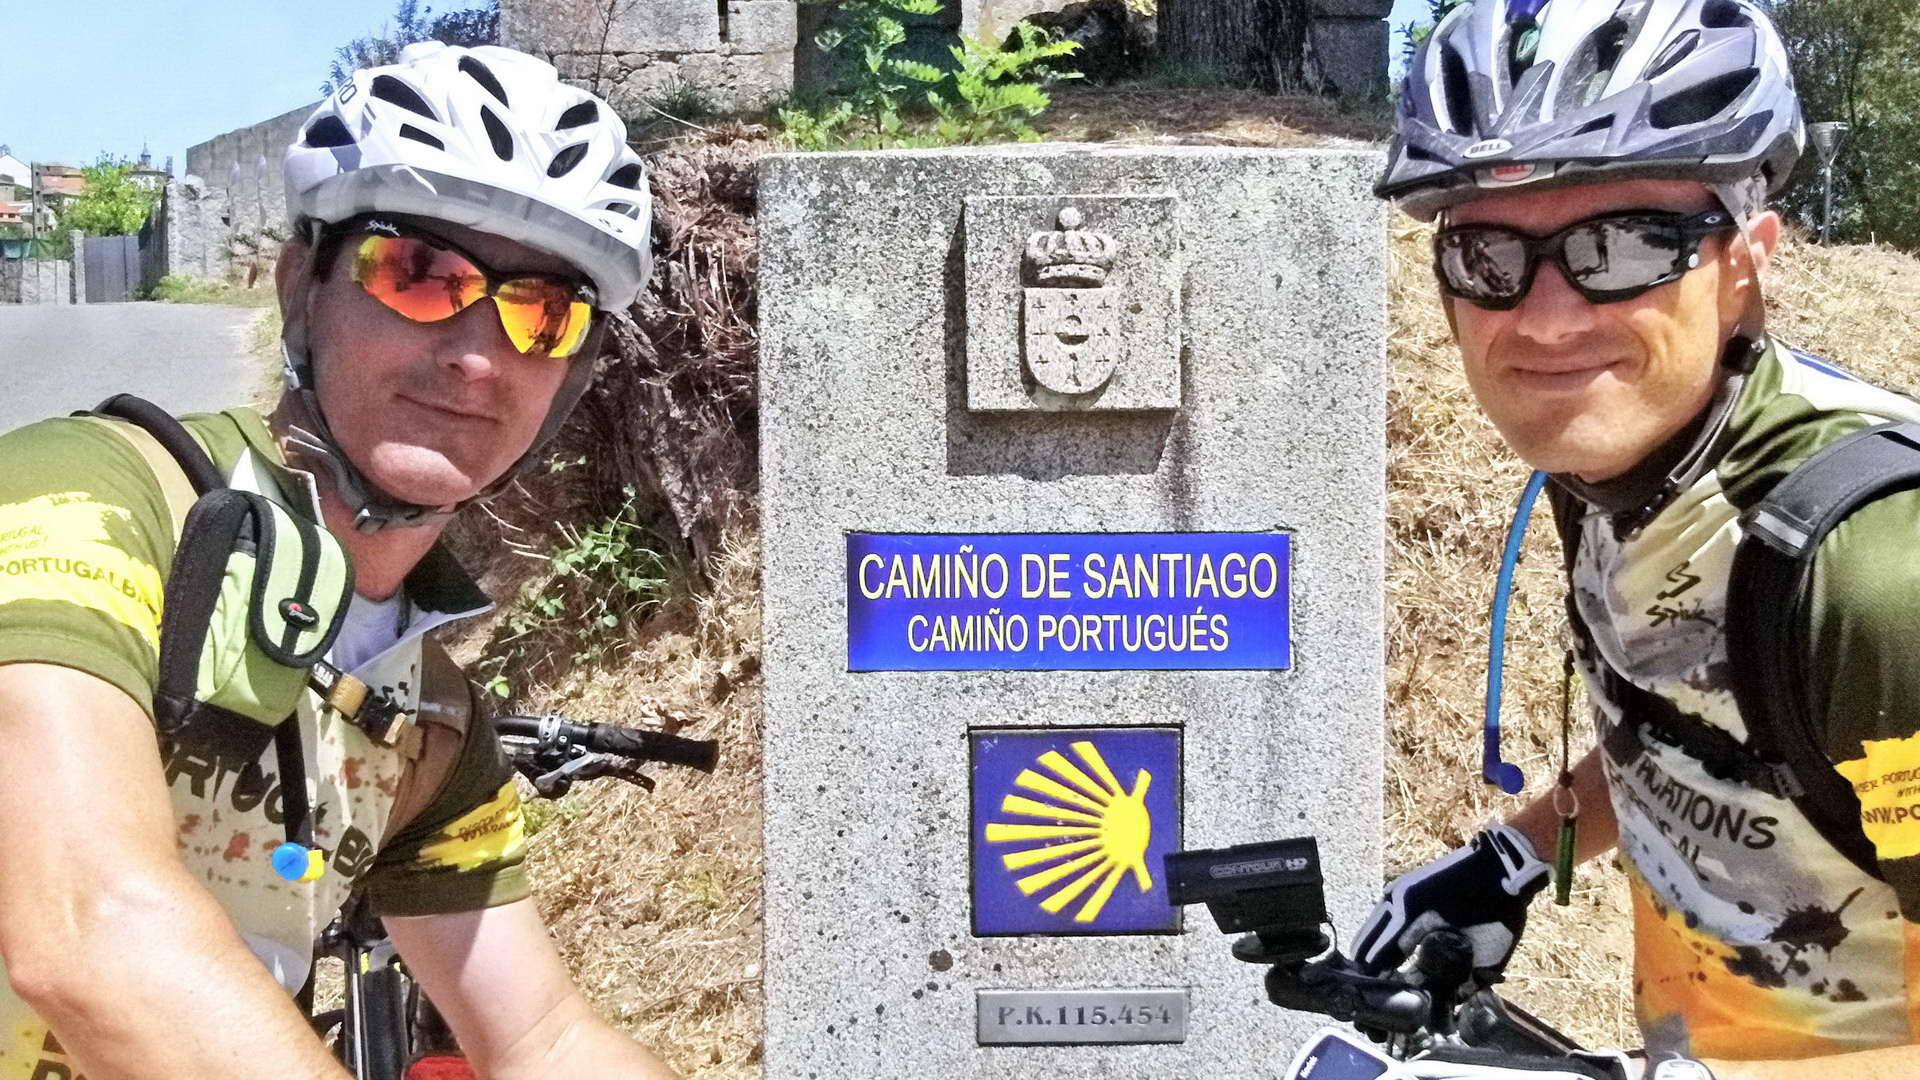 cycling the camino de santiago, bike tours portugal